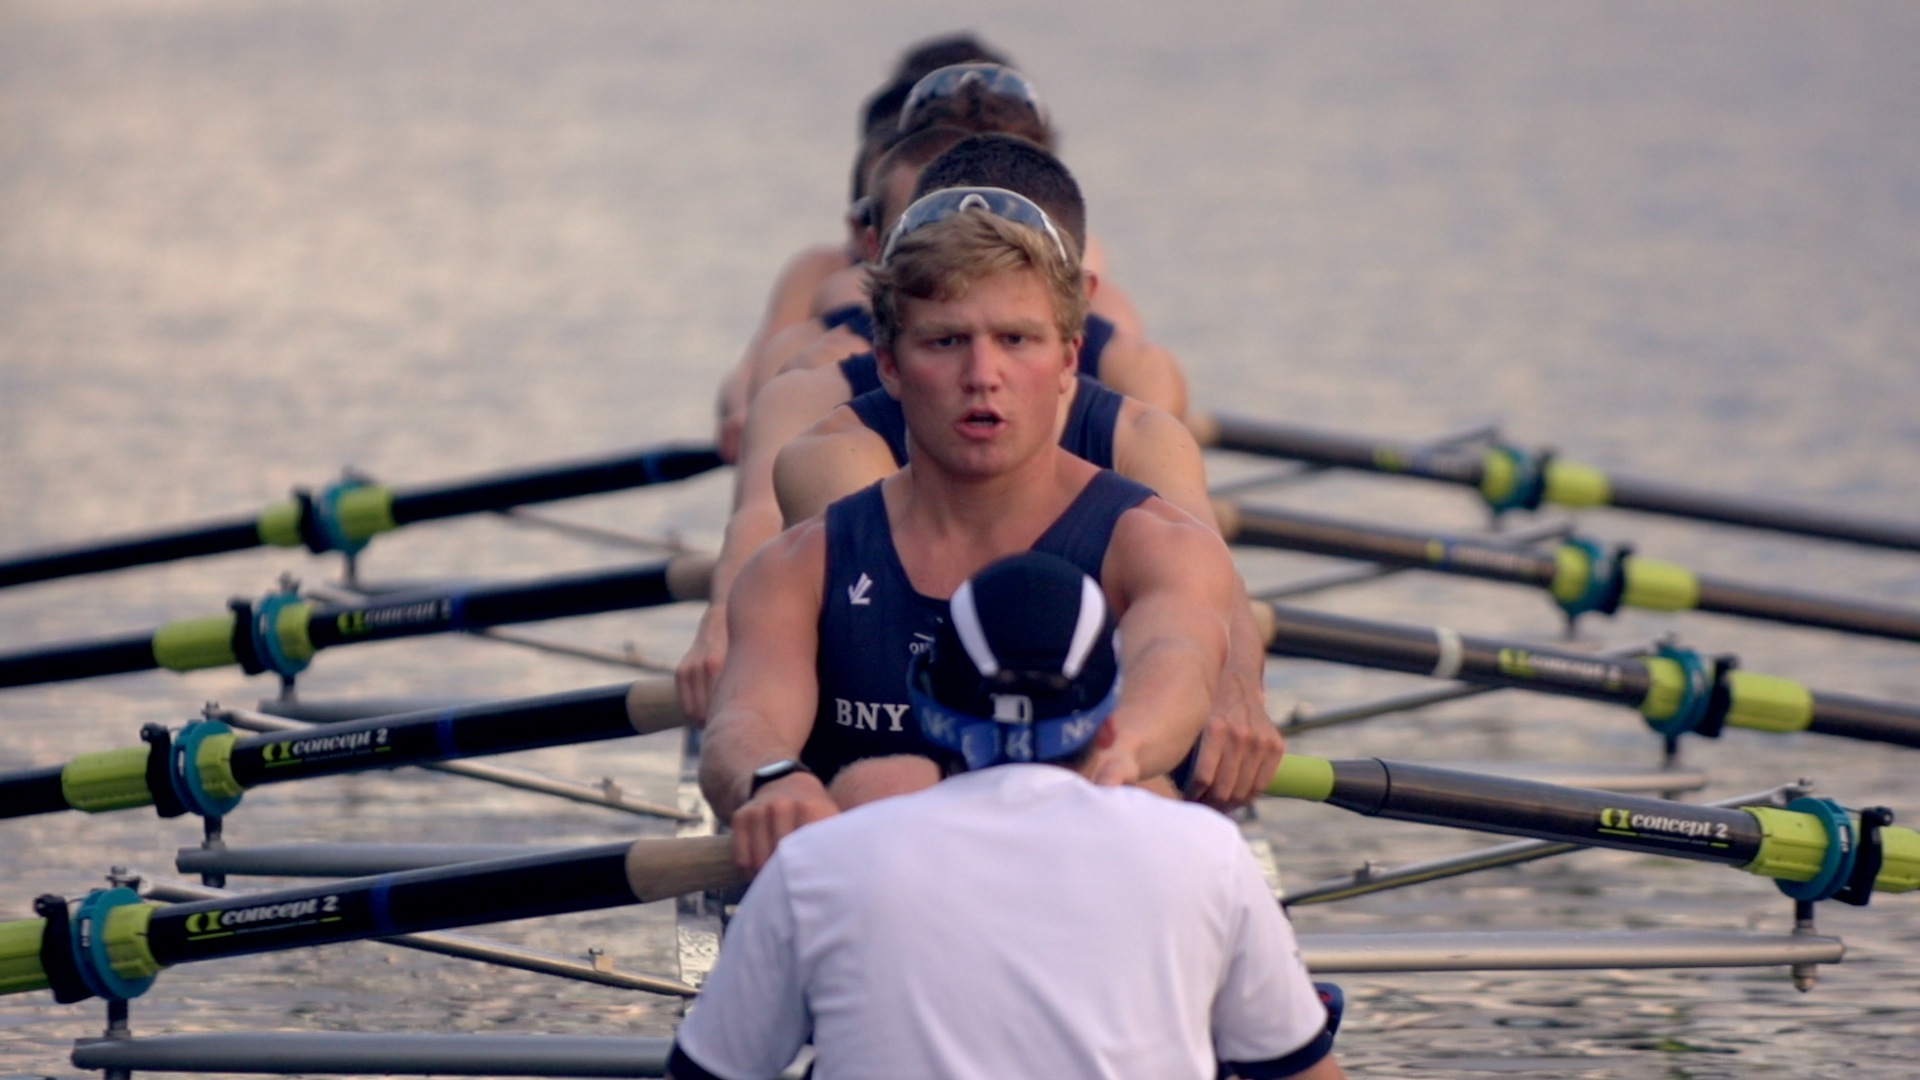 Constantine Louloudis heads up the Blue Boat in our Boat Race series